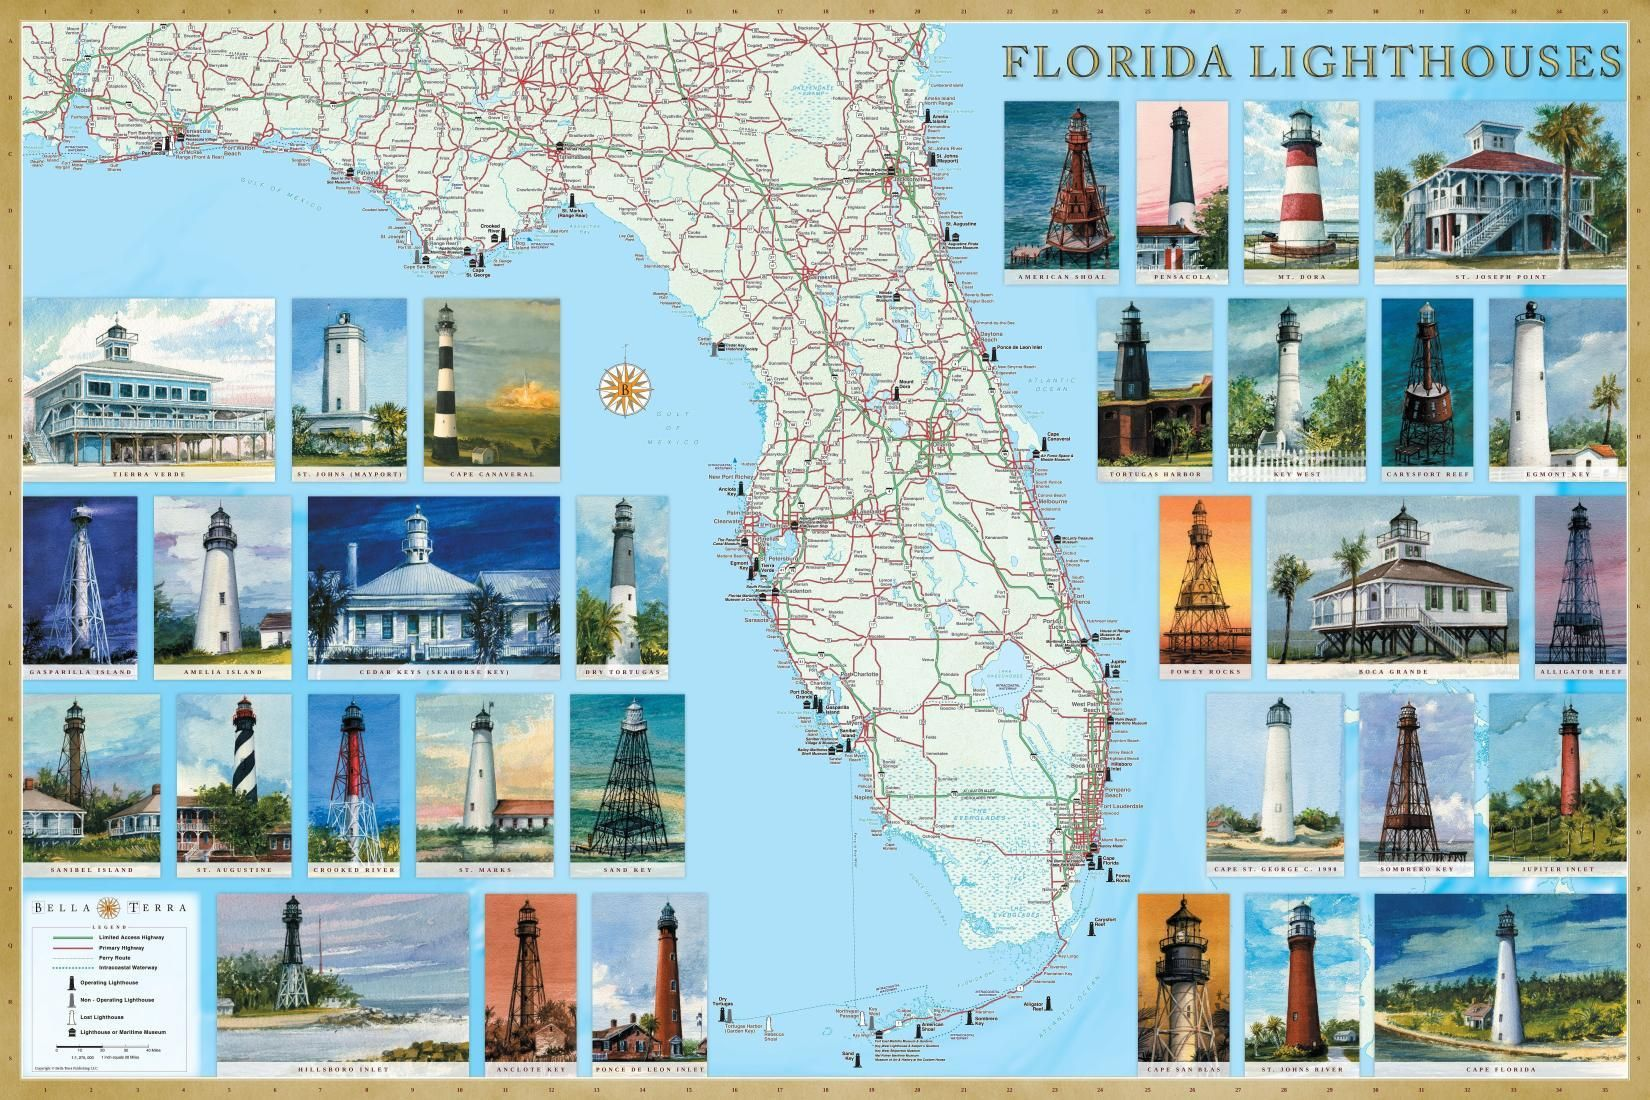 Florida Lighthouses Map Laminated Poster by Bella